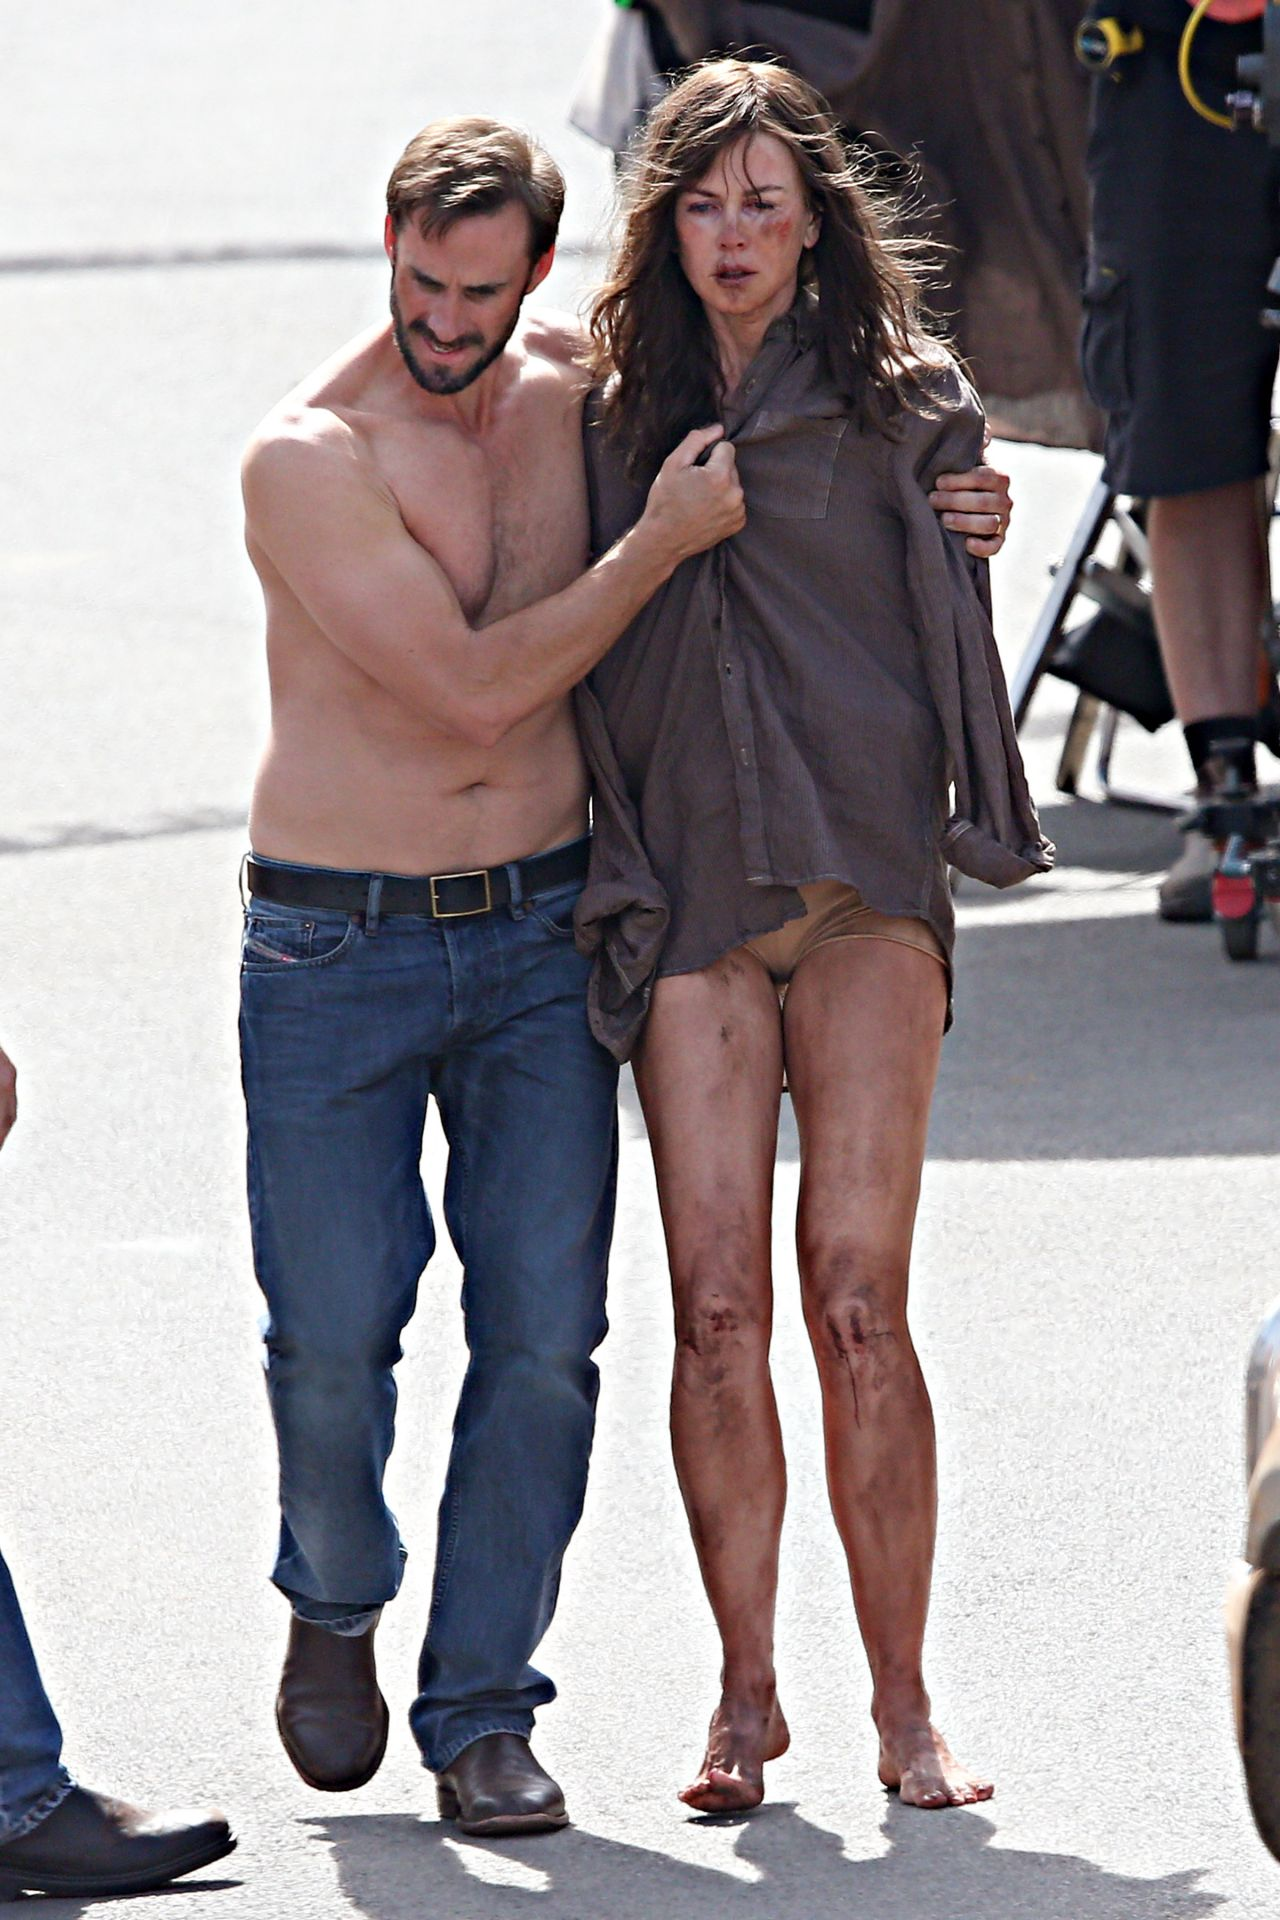 Nicole Kidman On The Filmset Of Her New Movie Strangerland - April 2014-2917